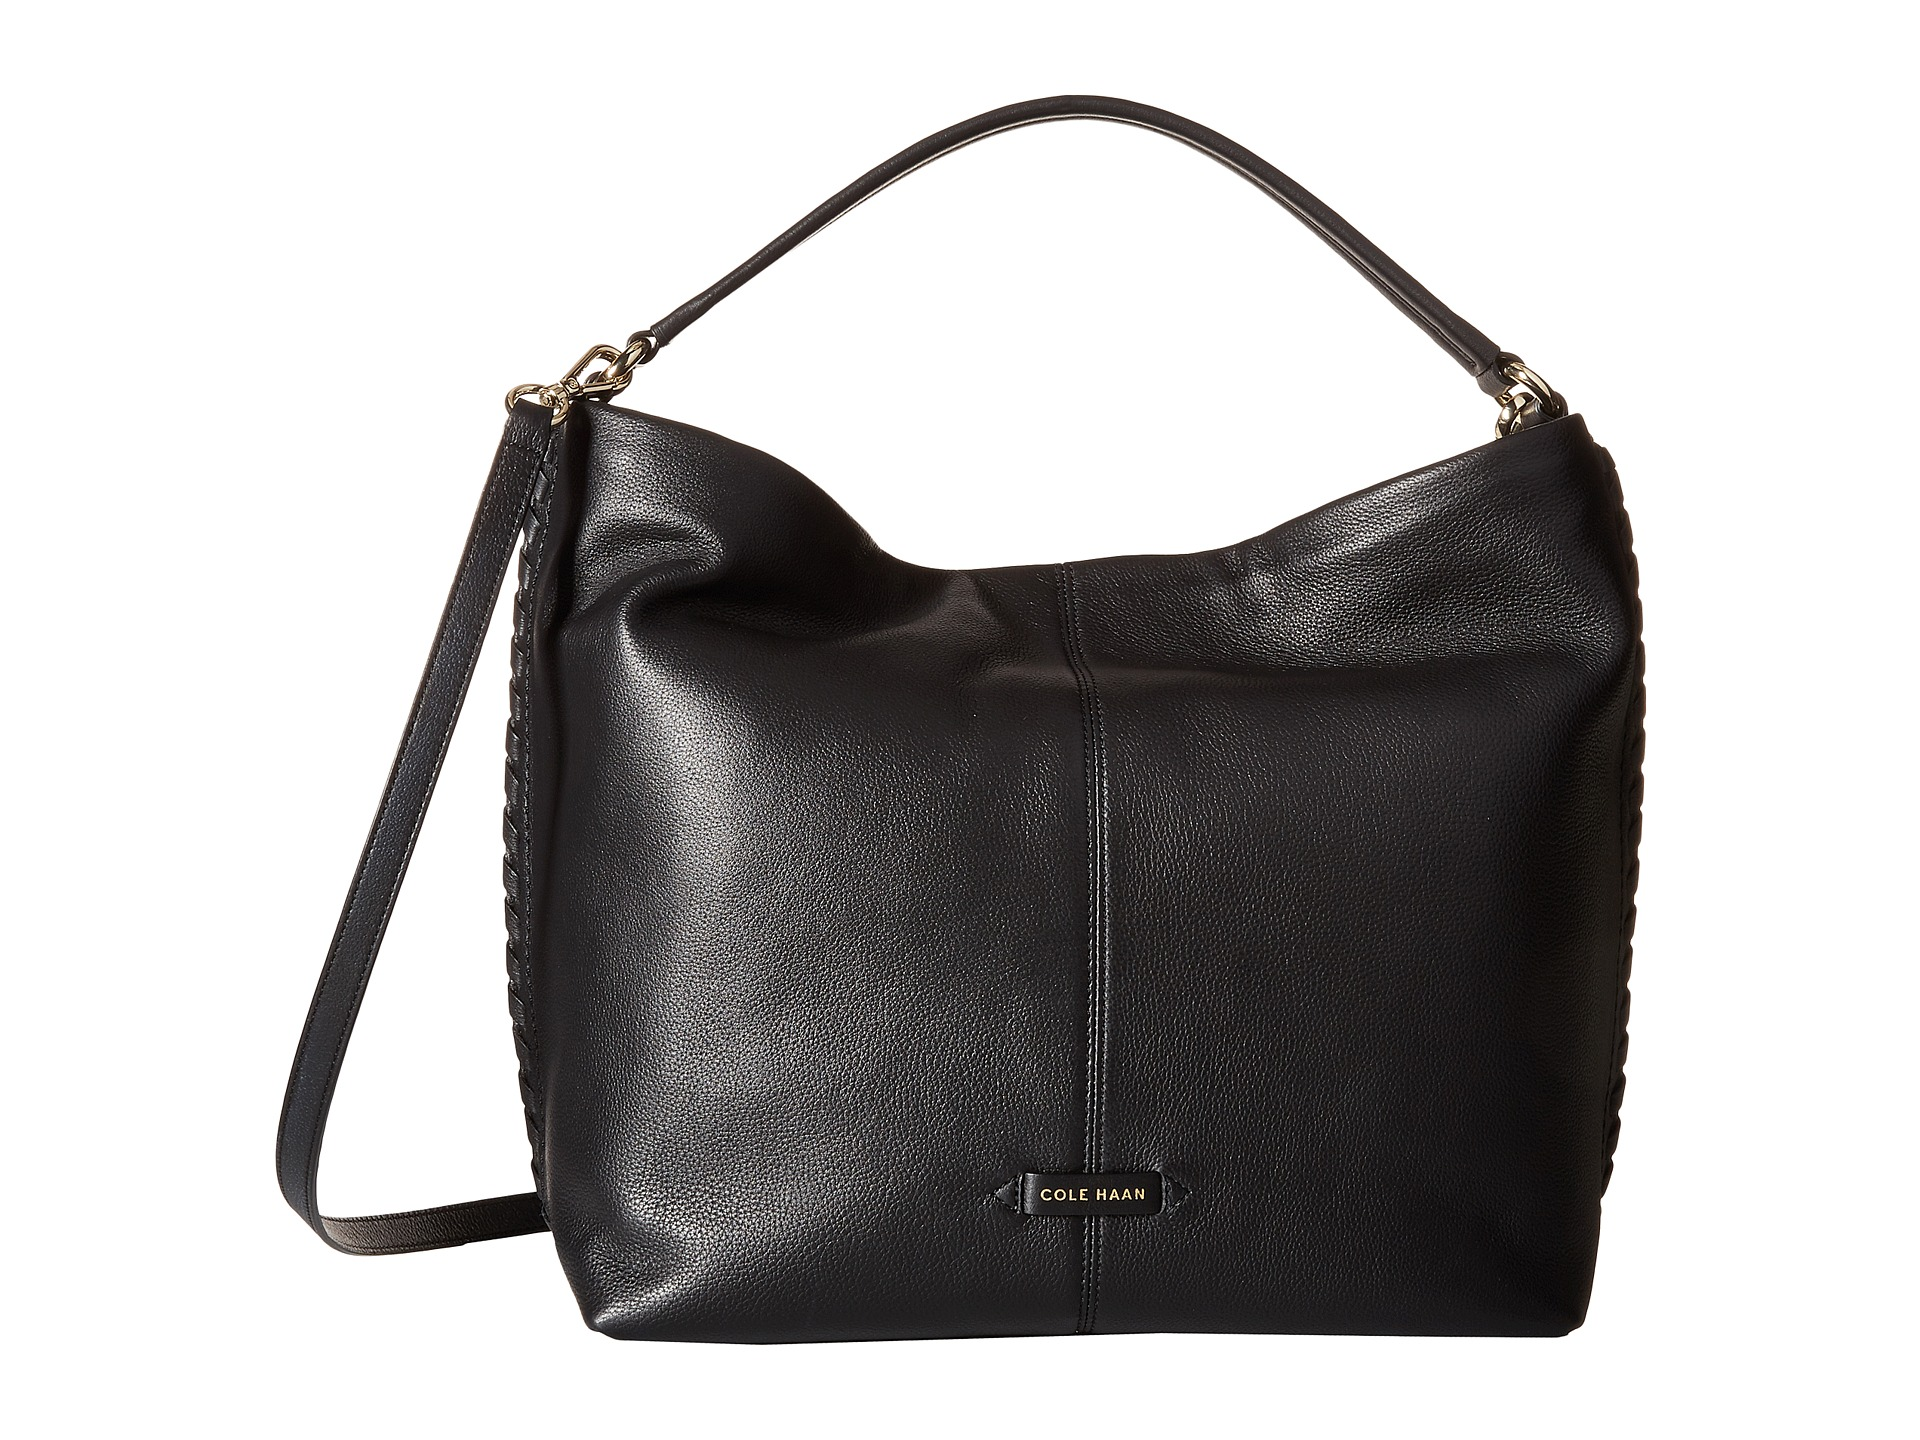 Cole haan single strap hobo